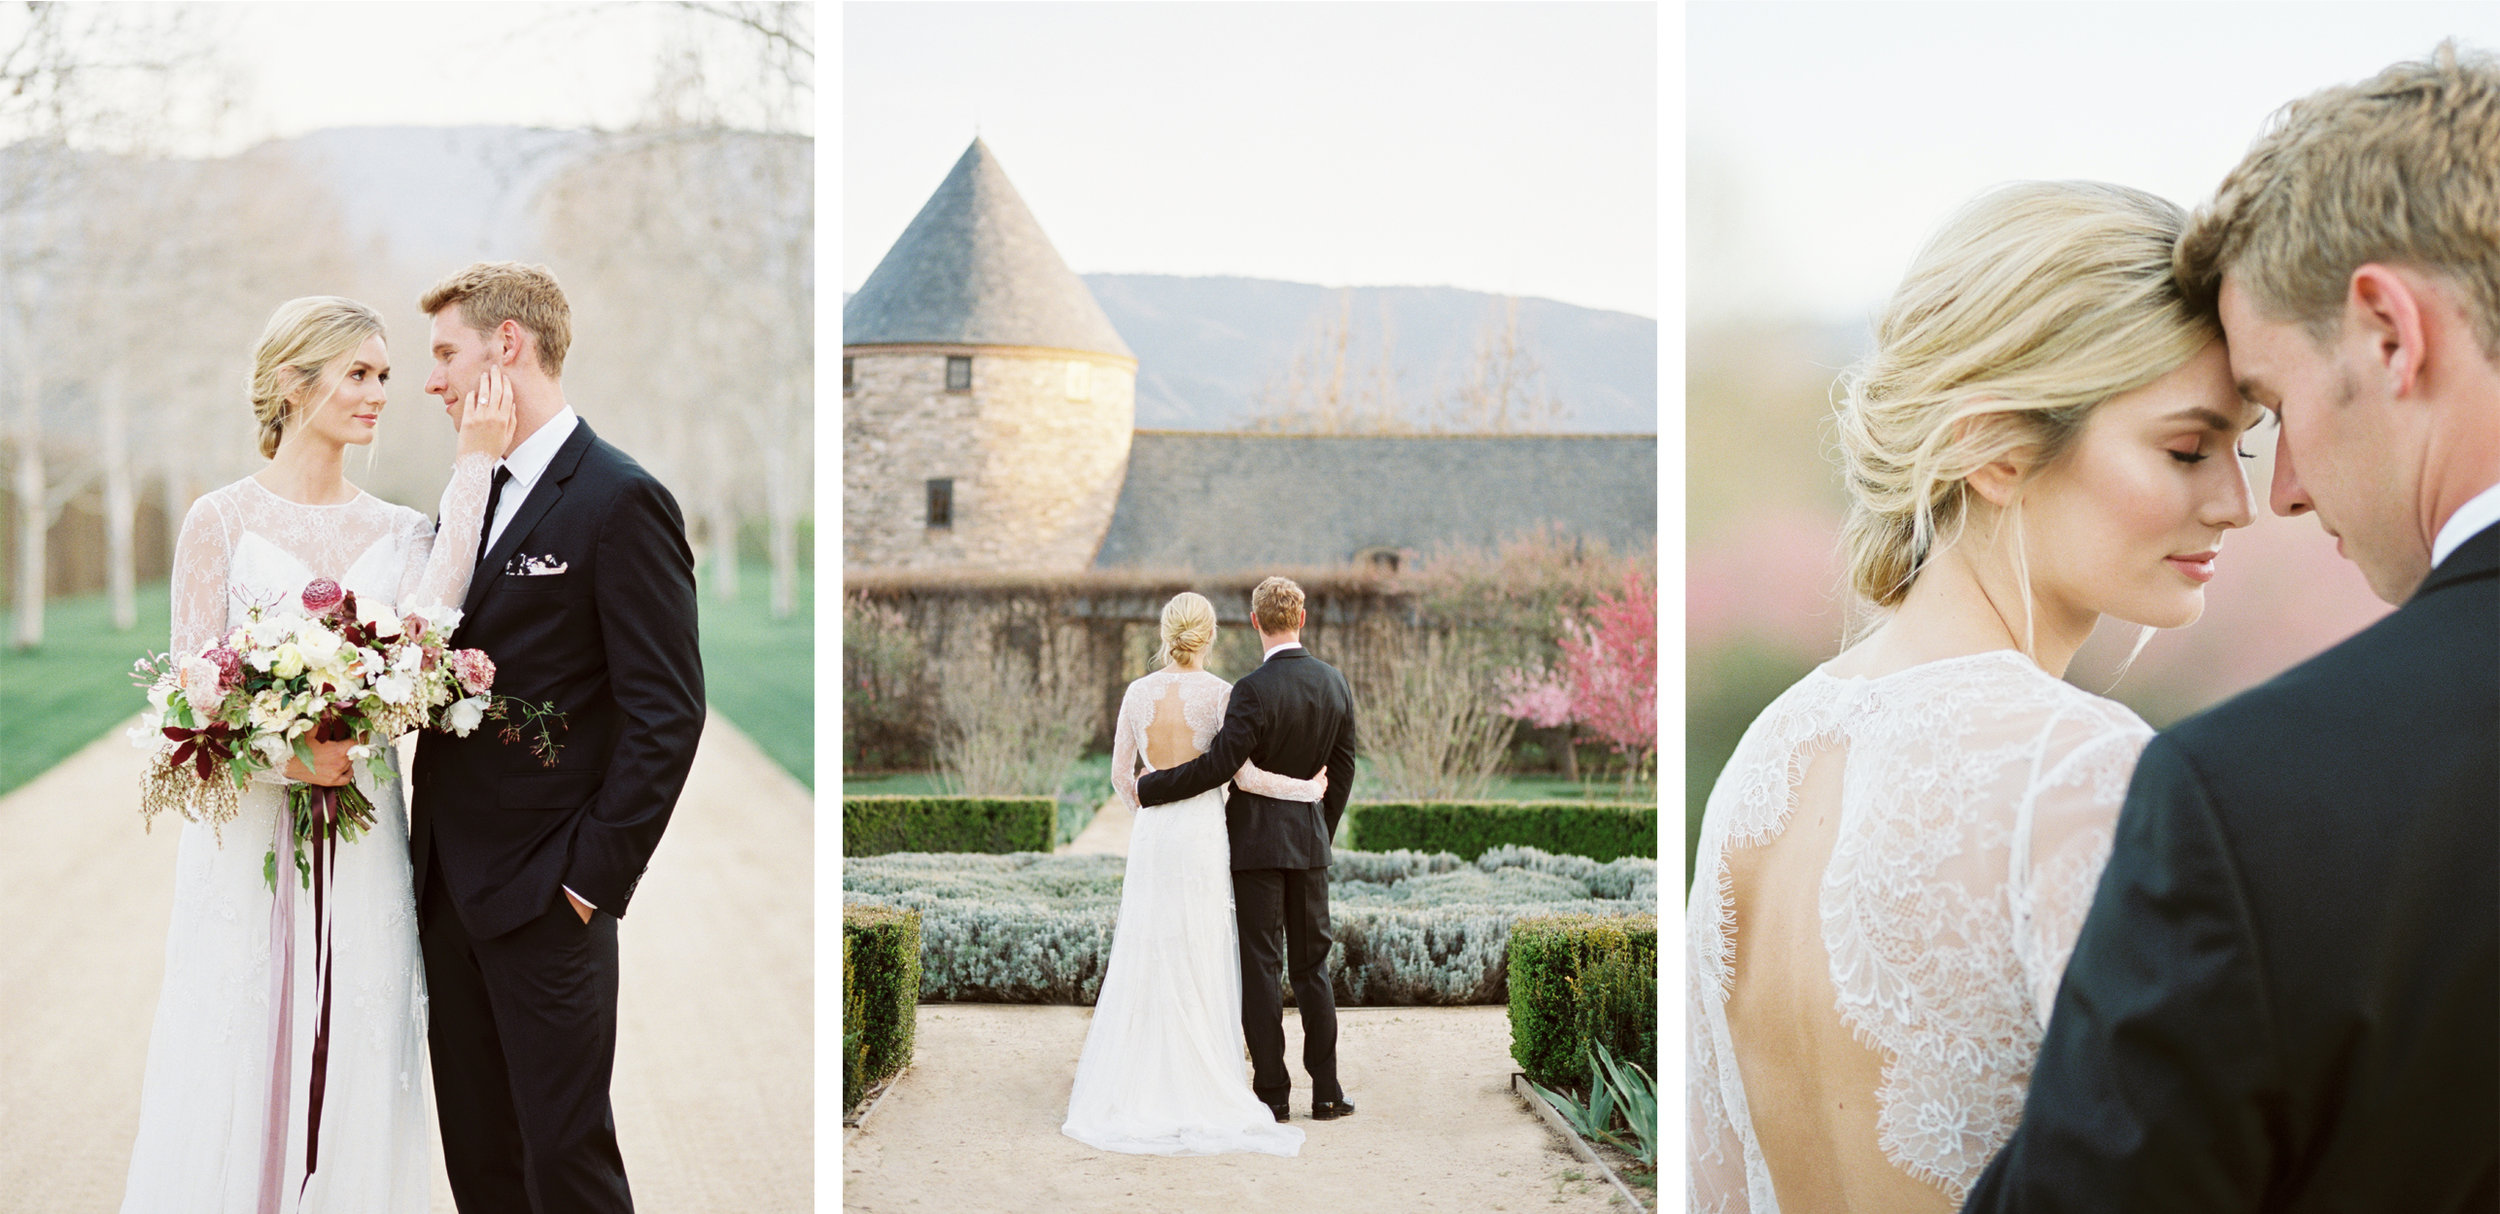 Romantic Wedding at Kestrel Park in Santa Ynez, California by Tara Bielecki Photography